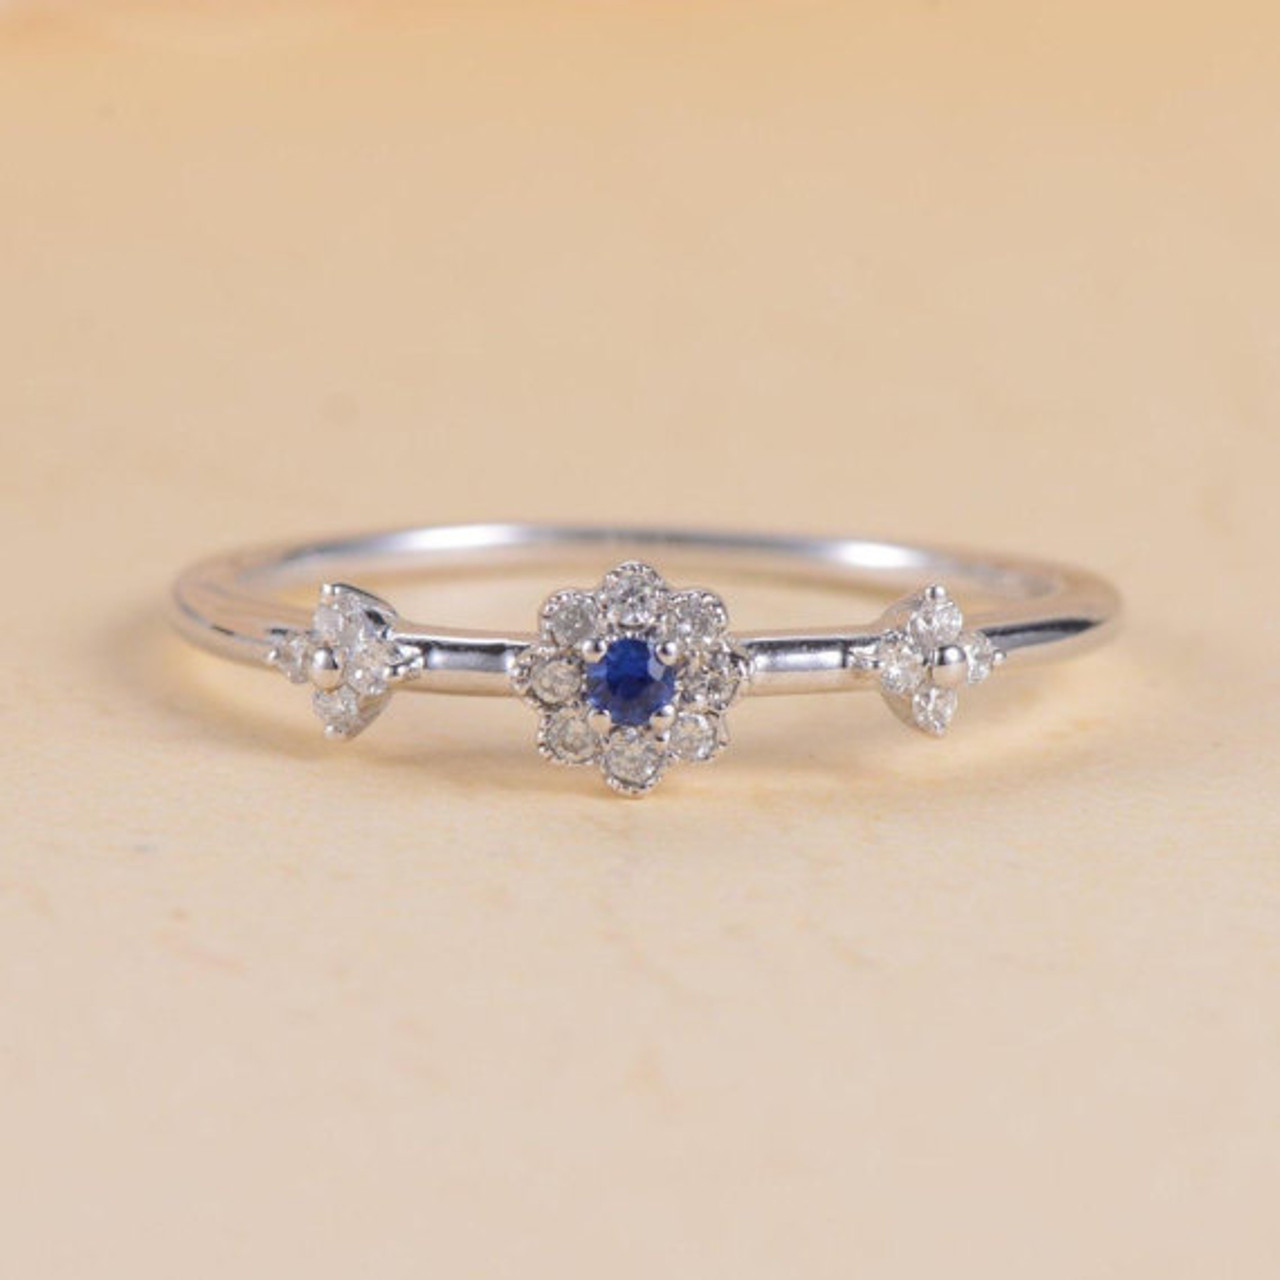 53e4d18bc6d9a Blue Sapphire Ring Halo Antique Diamond Flower White Gold Engagement Ring  Anniversary Promise Wedding Unique Tiny Dainty Micro Pave Ring